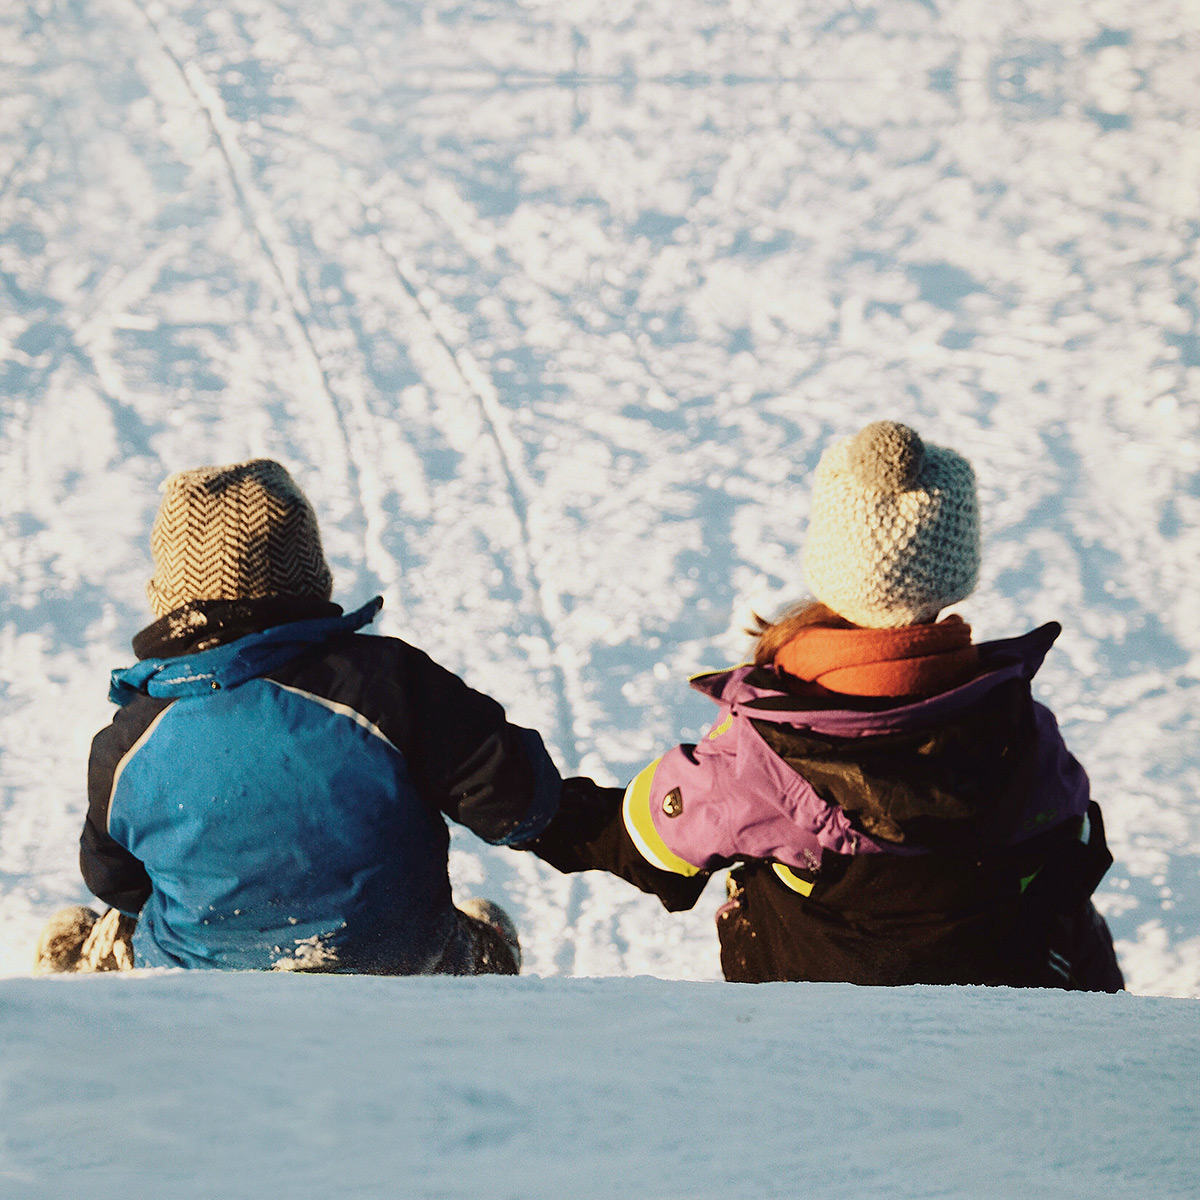 Two kids in winter clothes on their way down a slope on sleighs